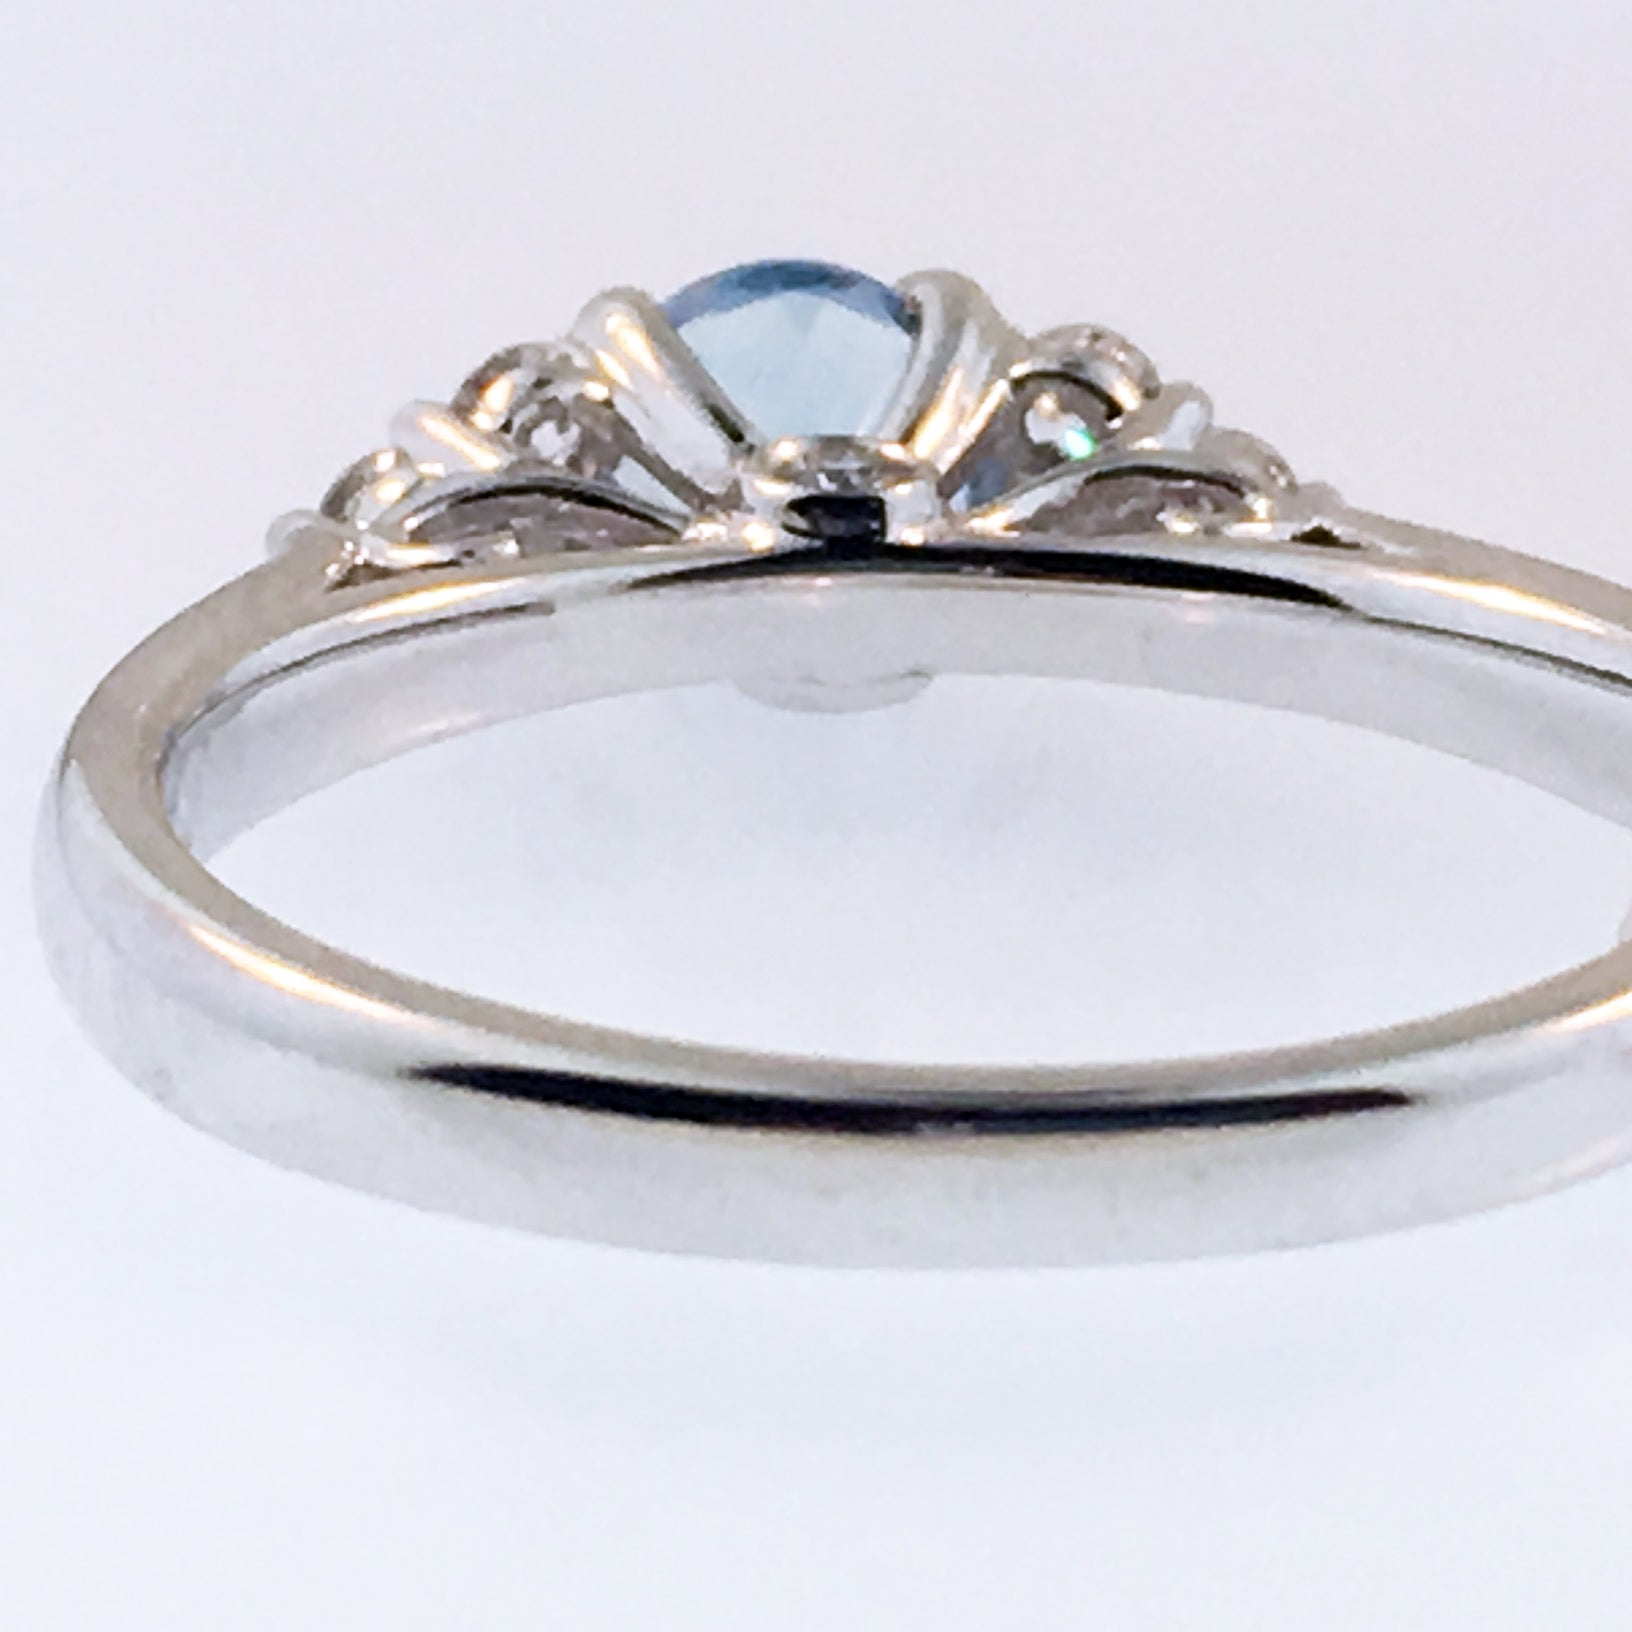 Ring Sizing: Down Size 18k Gold 3mm band width or thinner